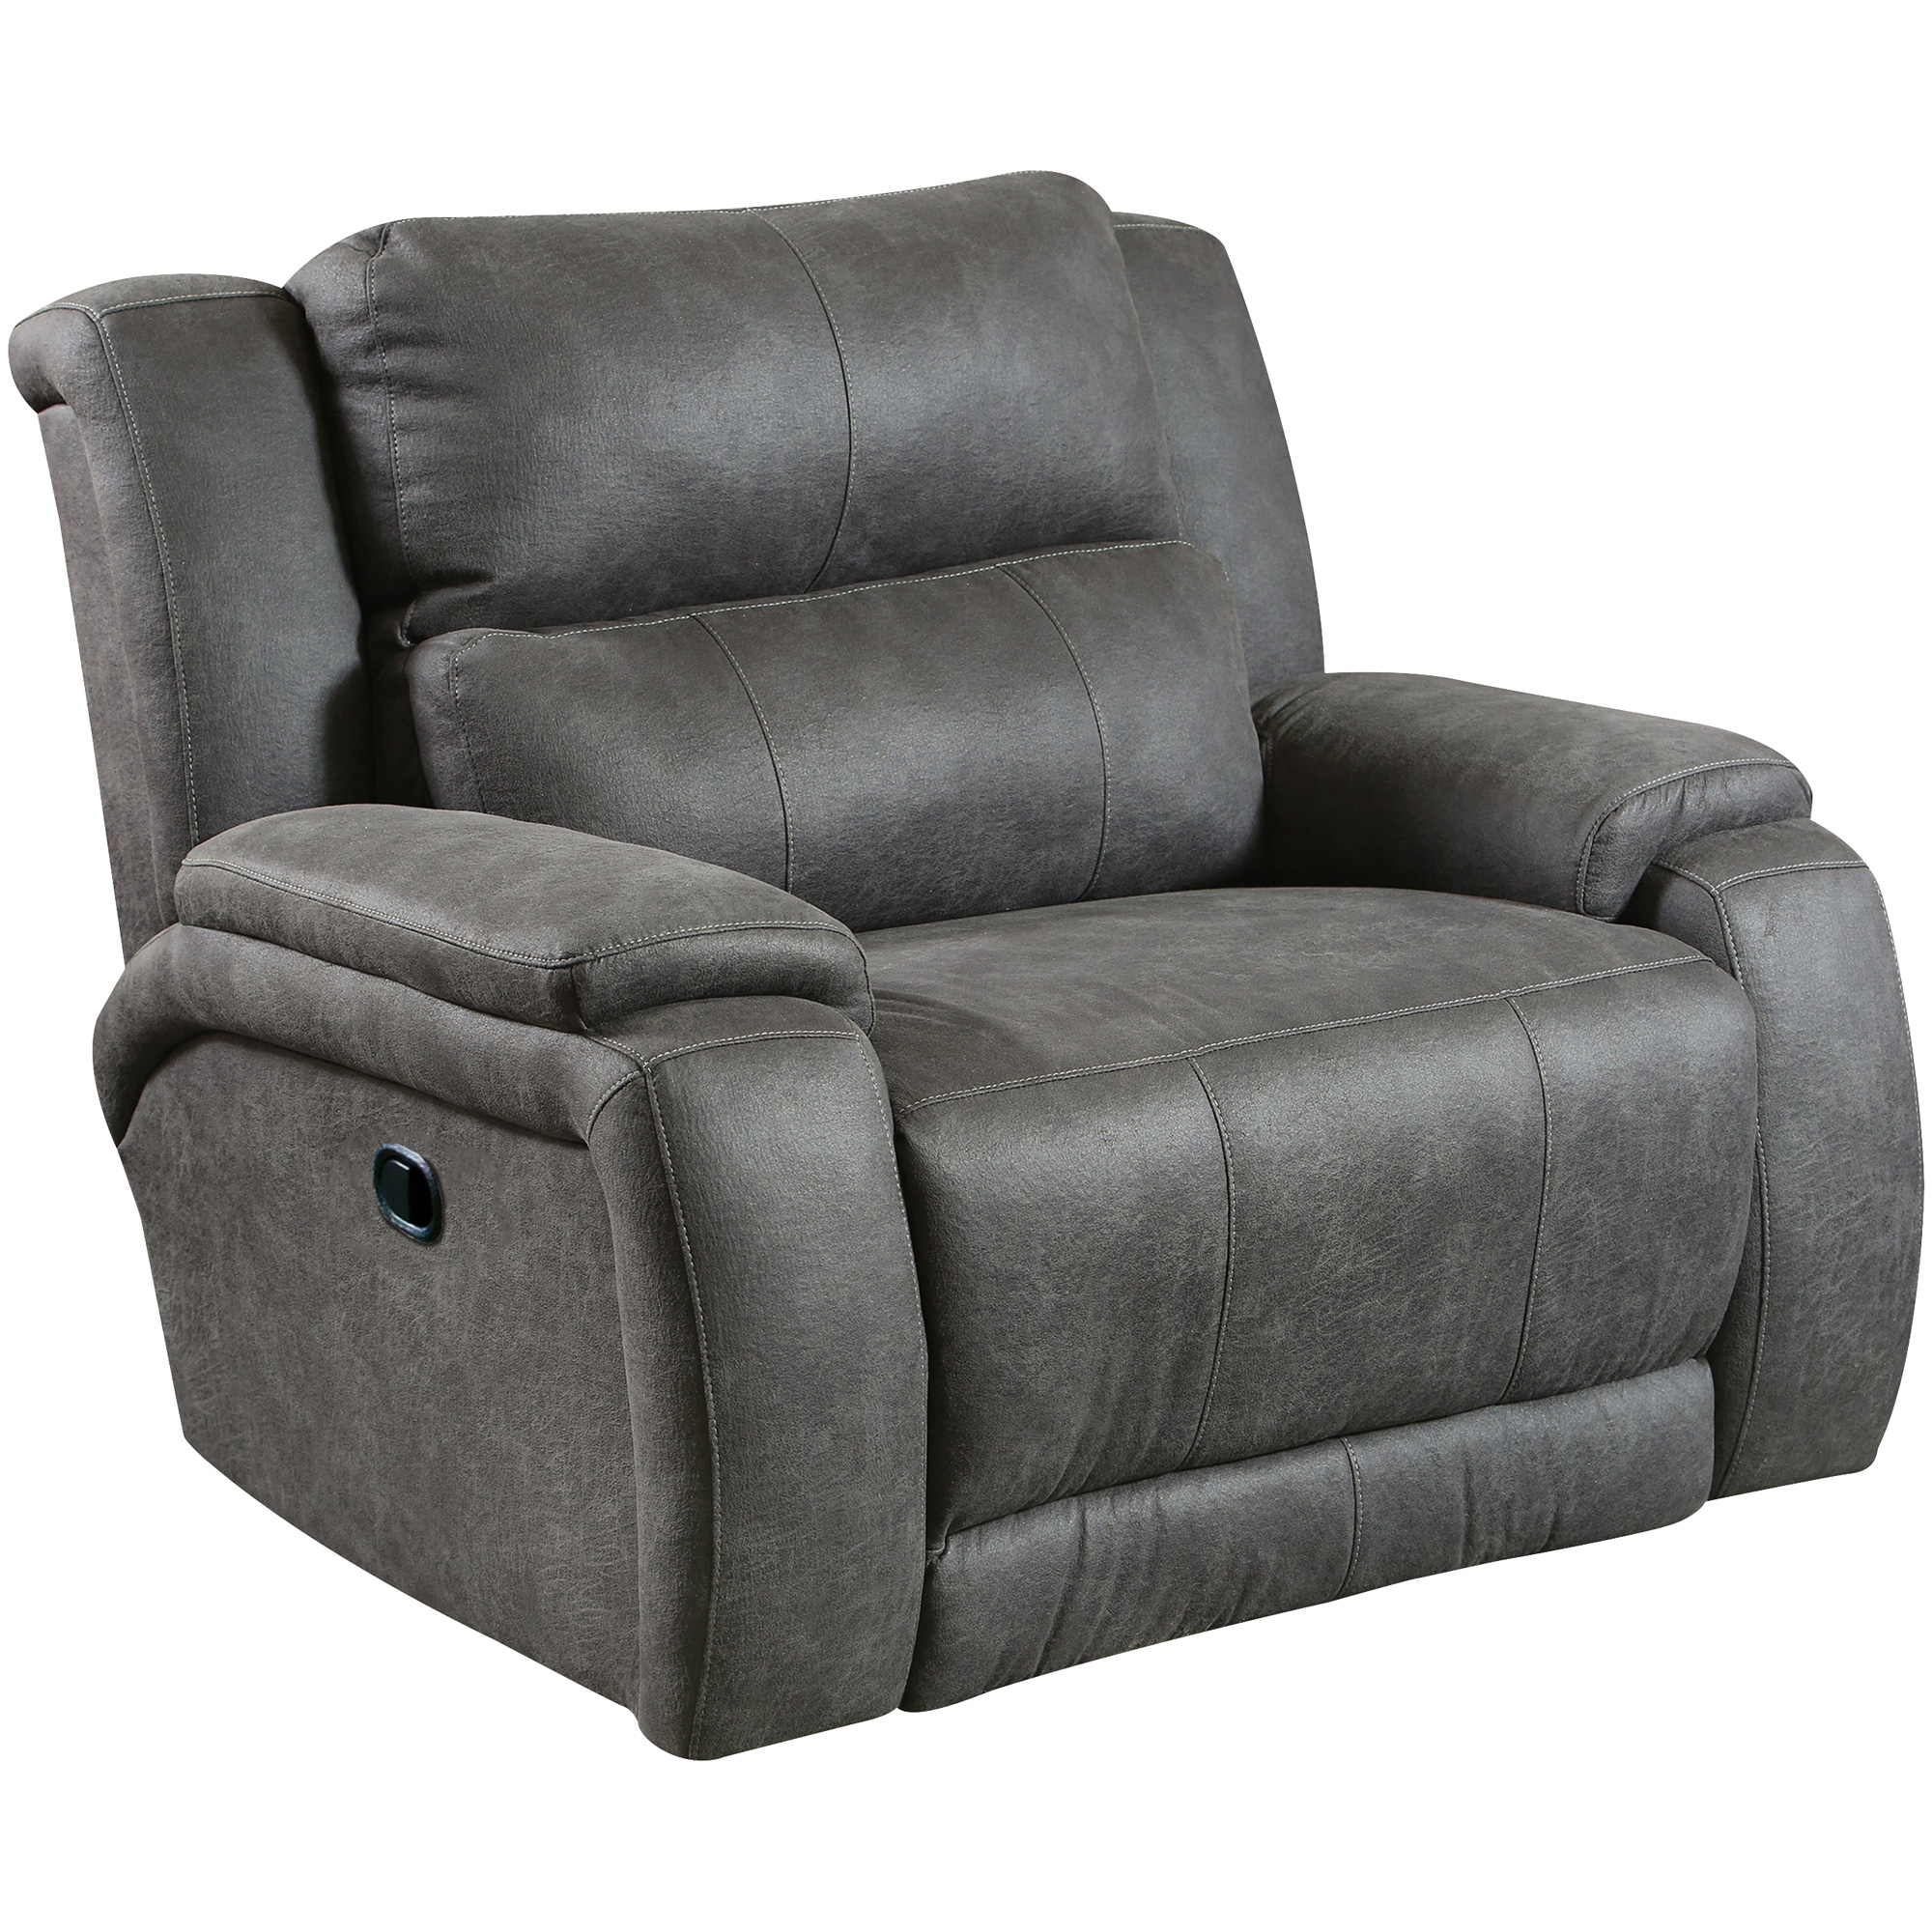 Southern Motion | Marquis Ink Recliner Chair